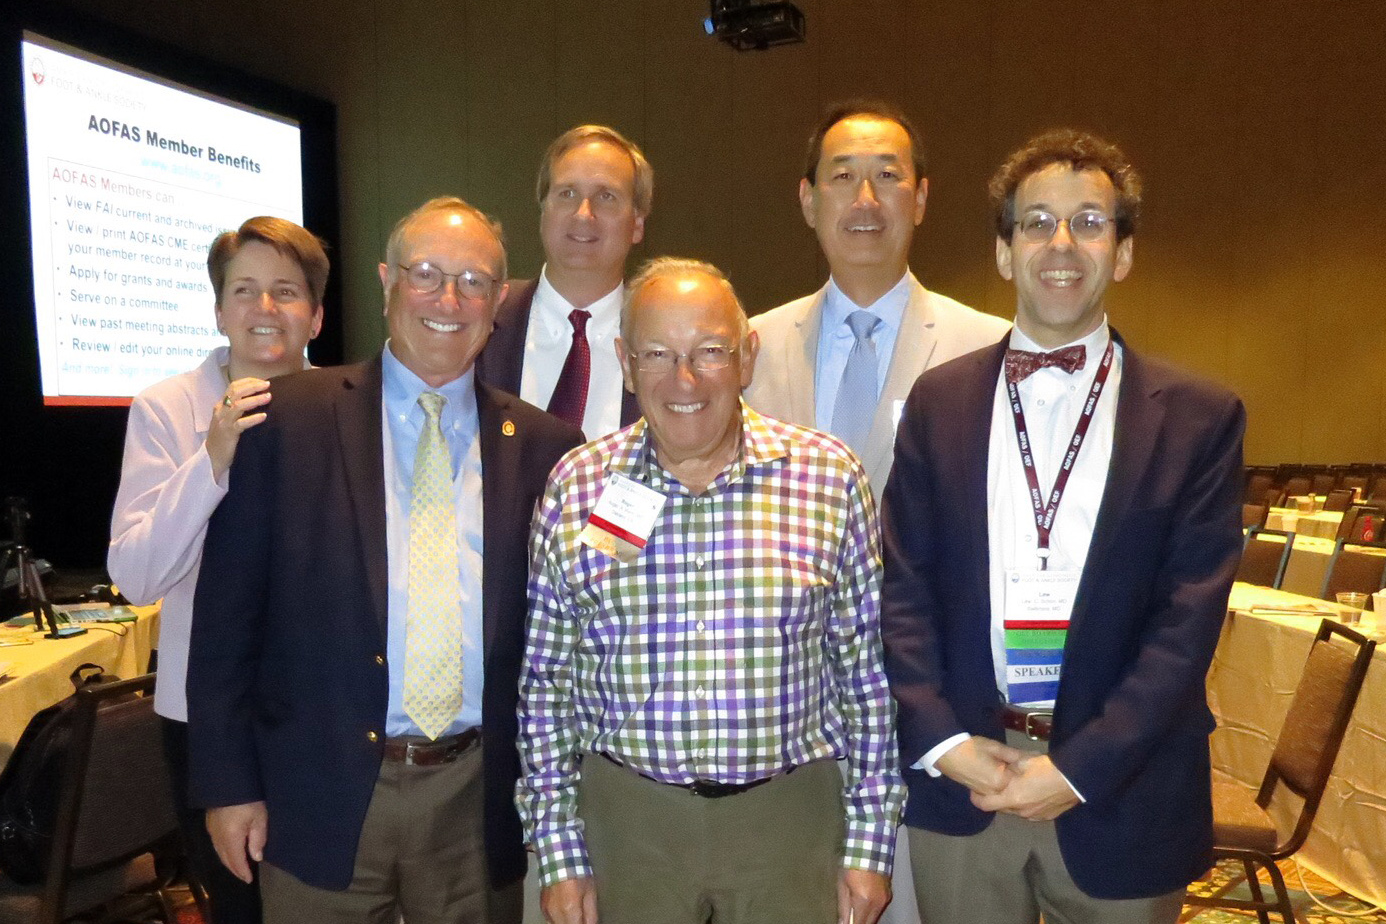 Drs. Judith Baumhauer,  John Gould, Mark Easley, Roger Mann, Thomas Lee, Lew Schon, MD